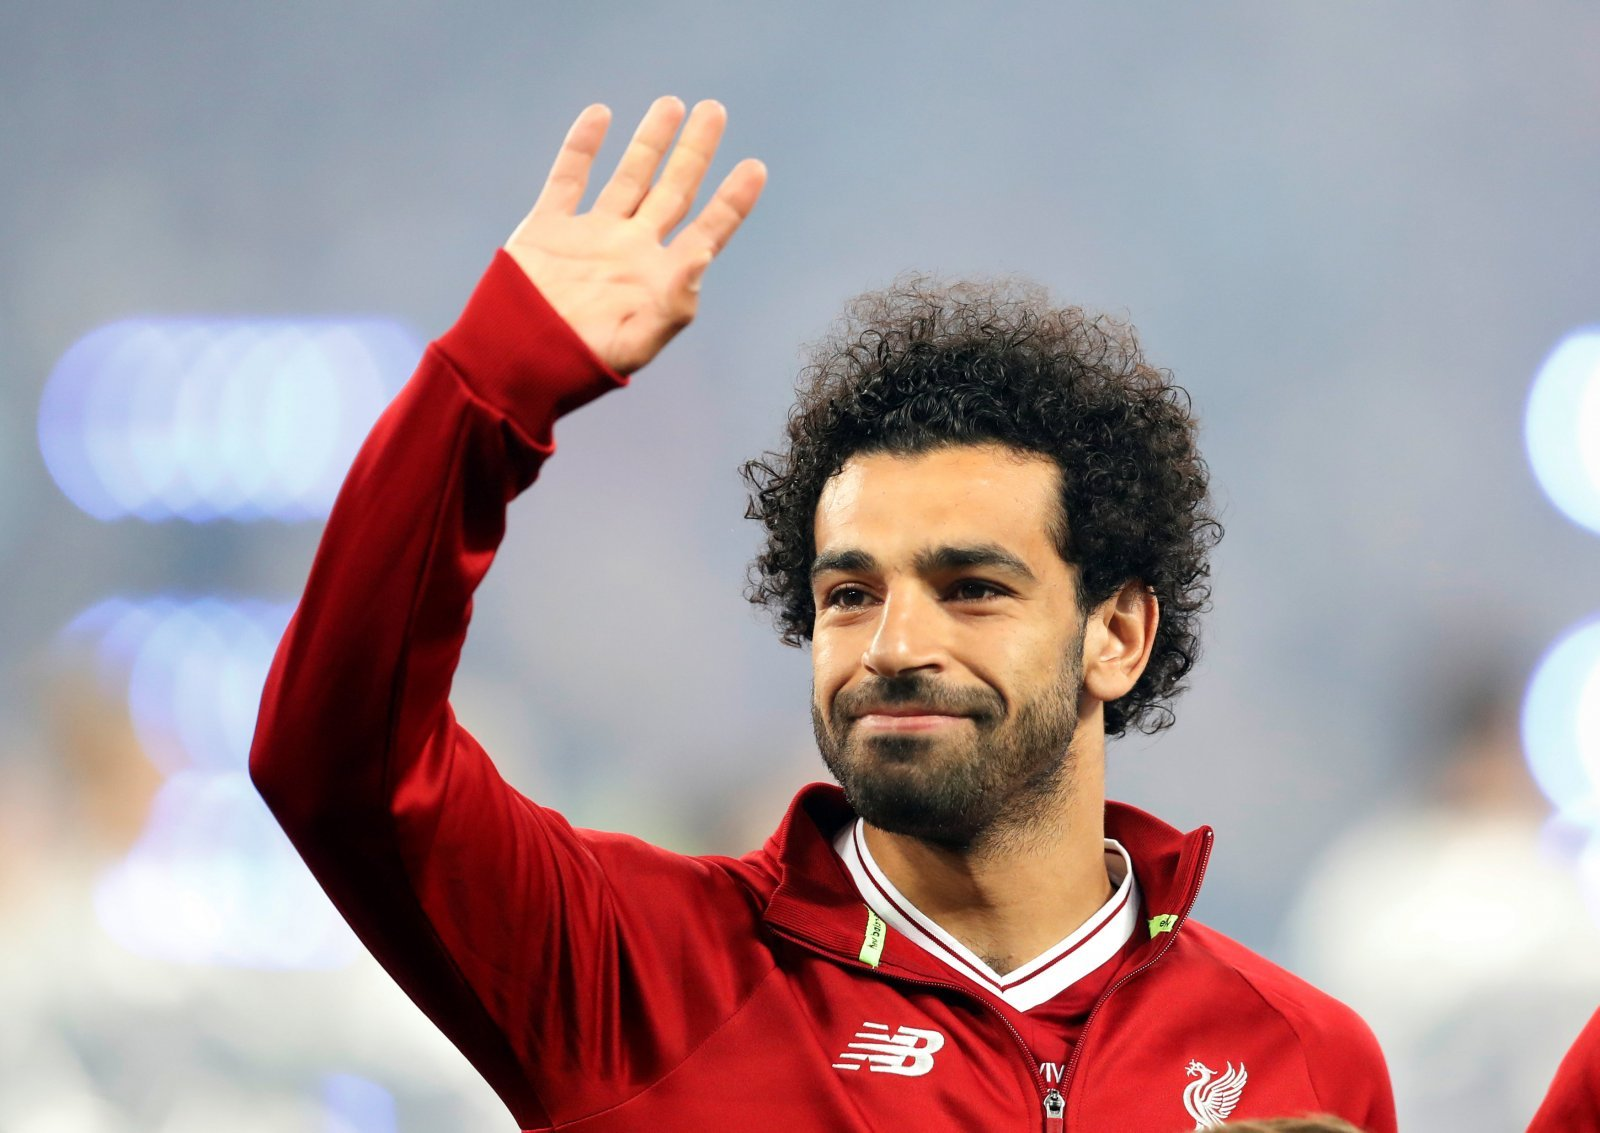 Liverpool fans react to Mohamed Salah's Puskas nomination